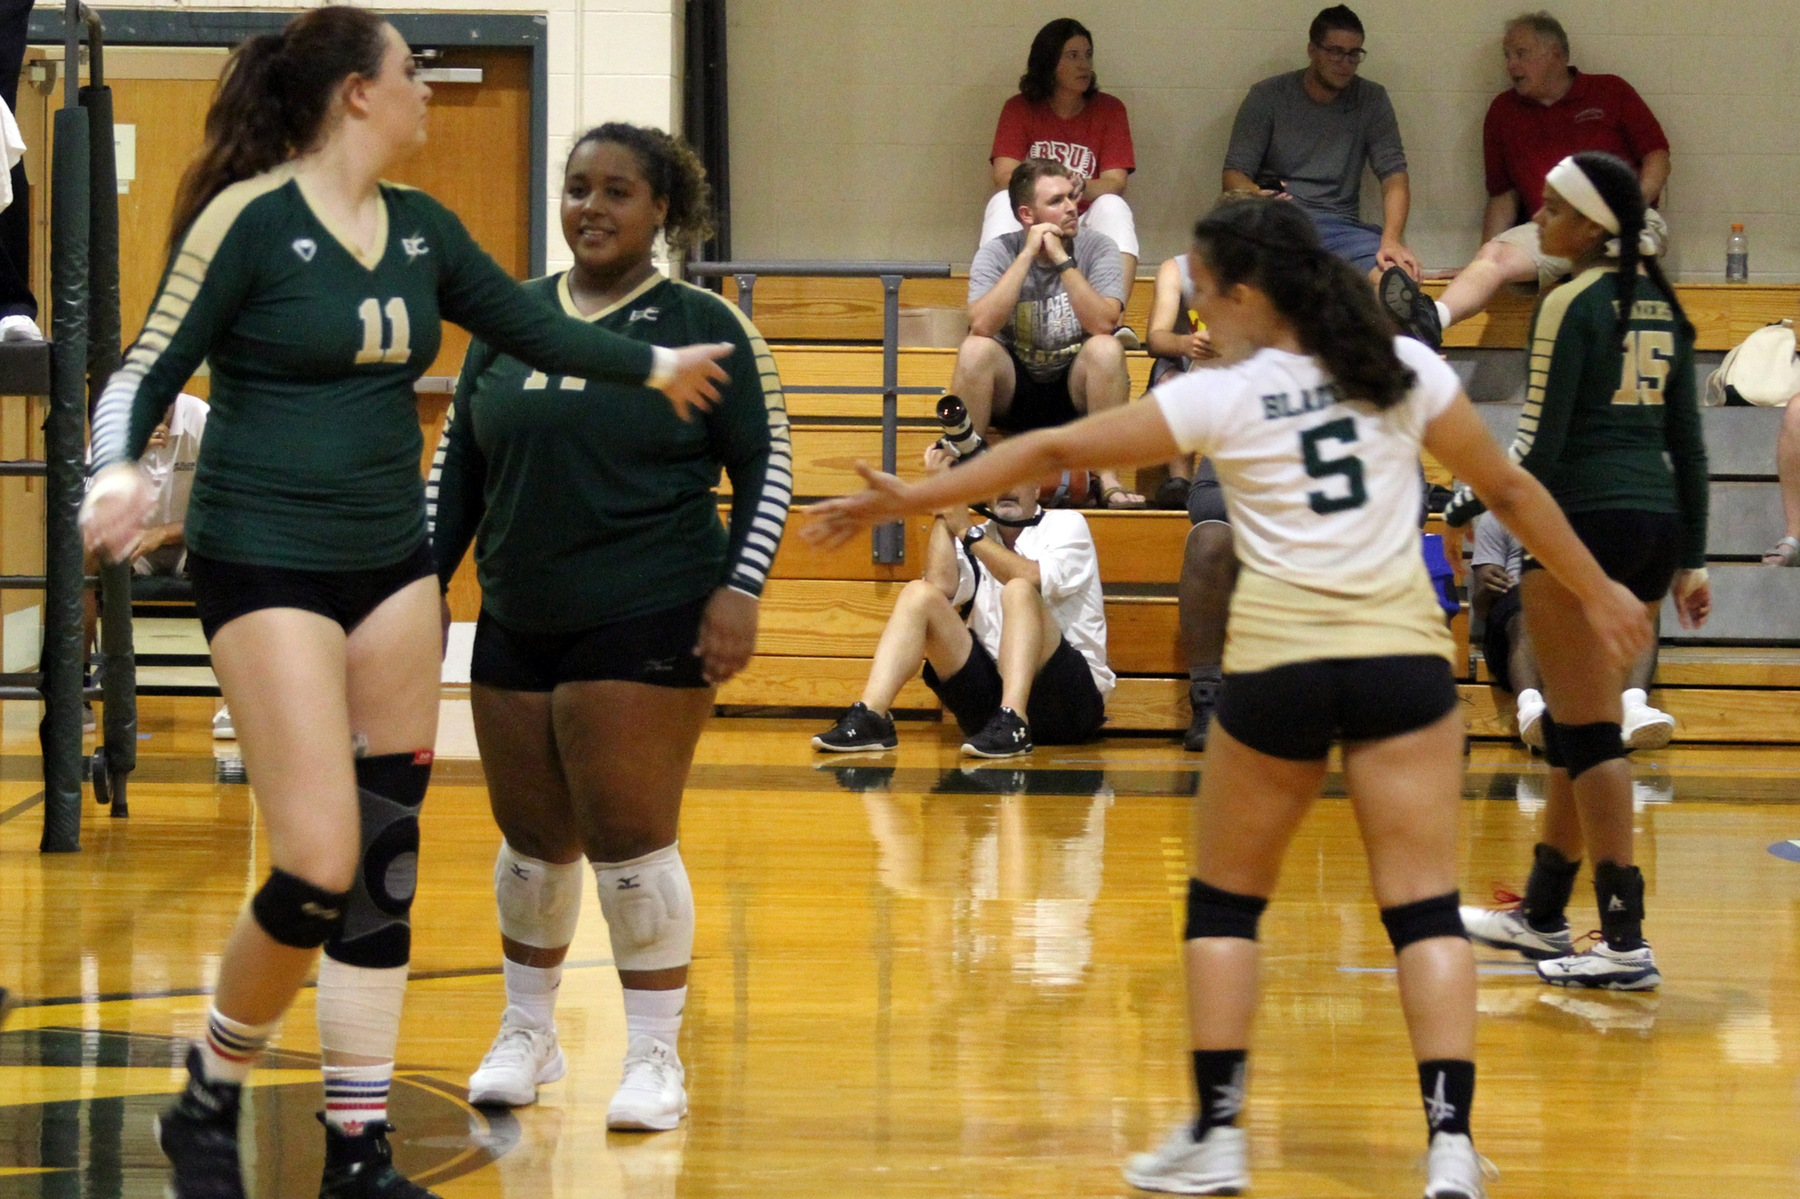 Women's Volleyball Advances To NECC Semis After 3-0 Win Over Dean